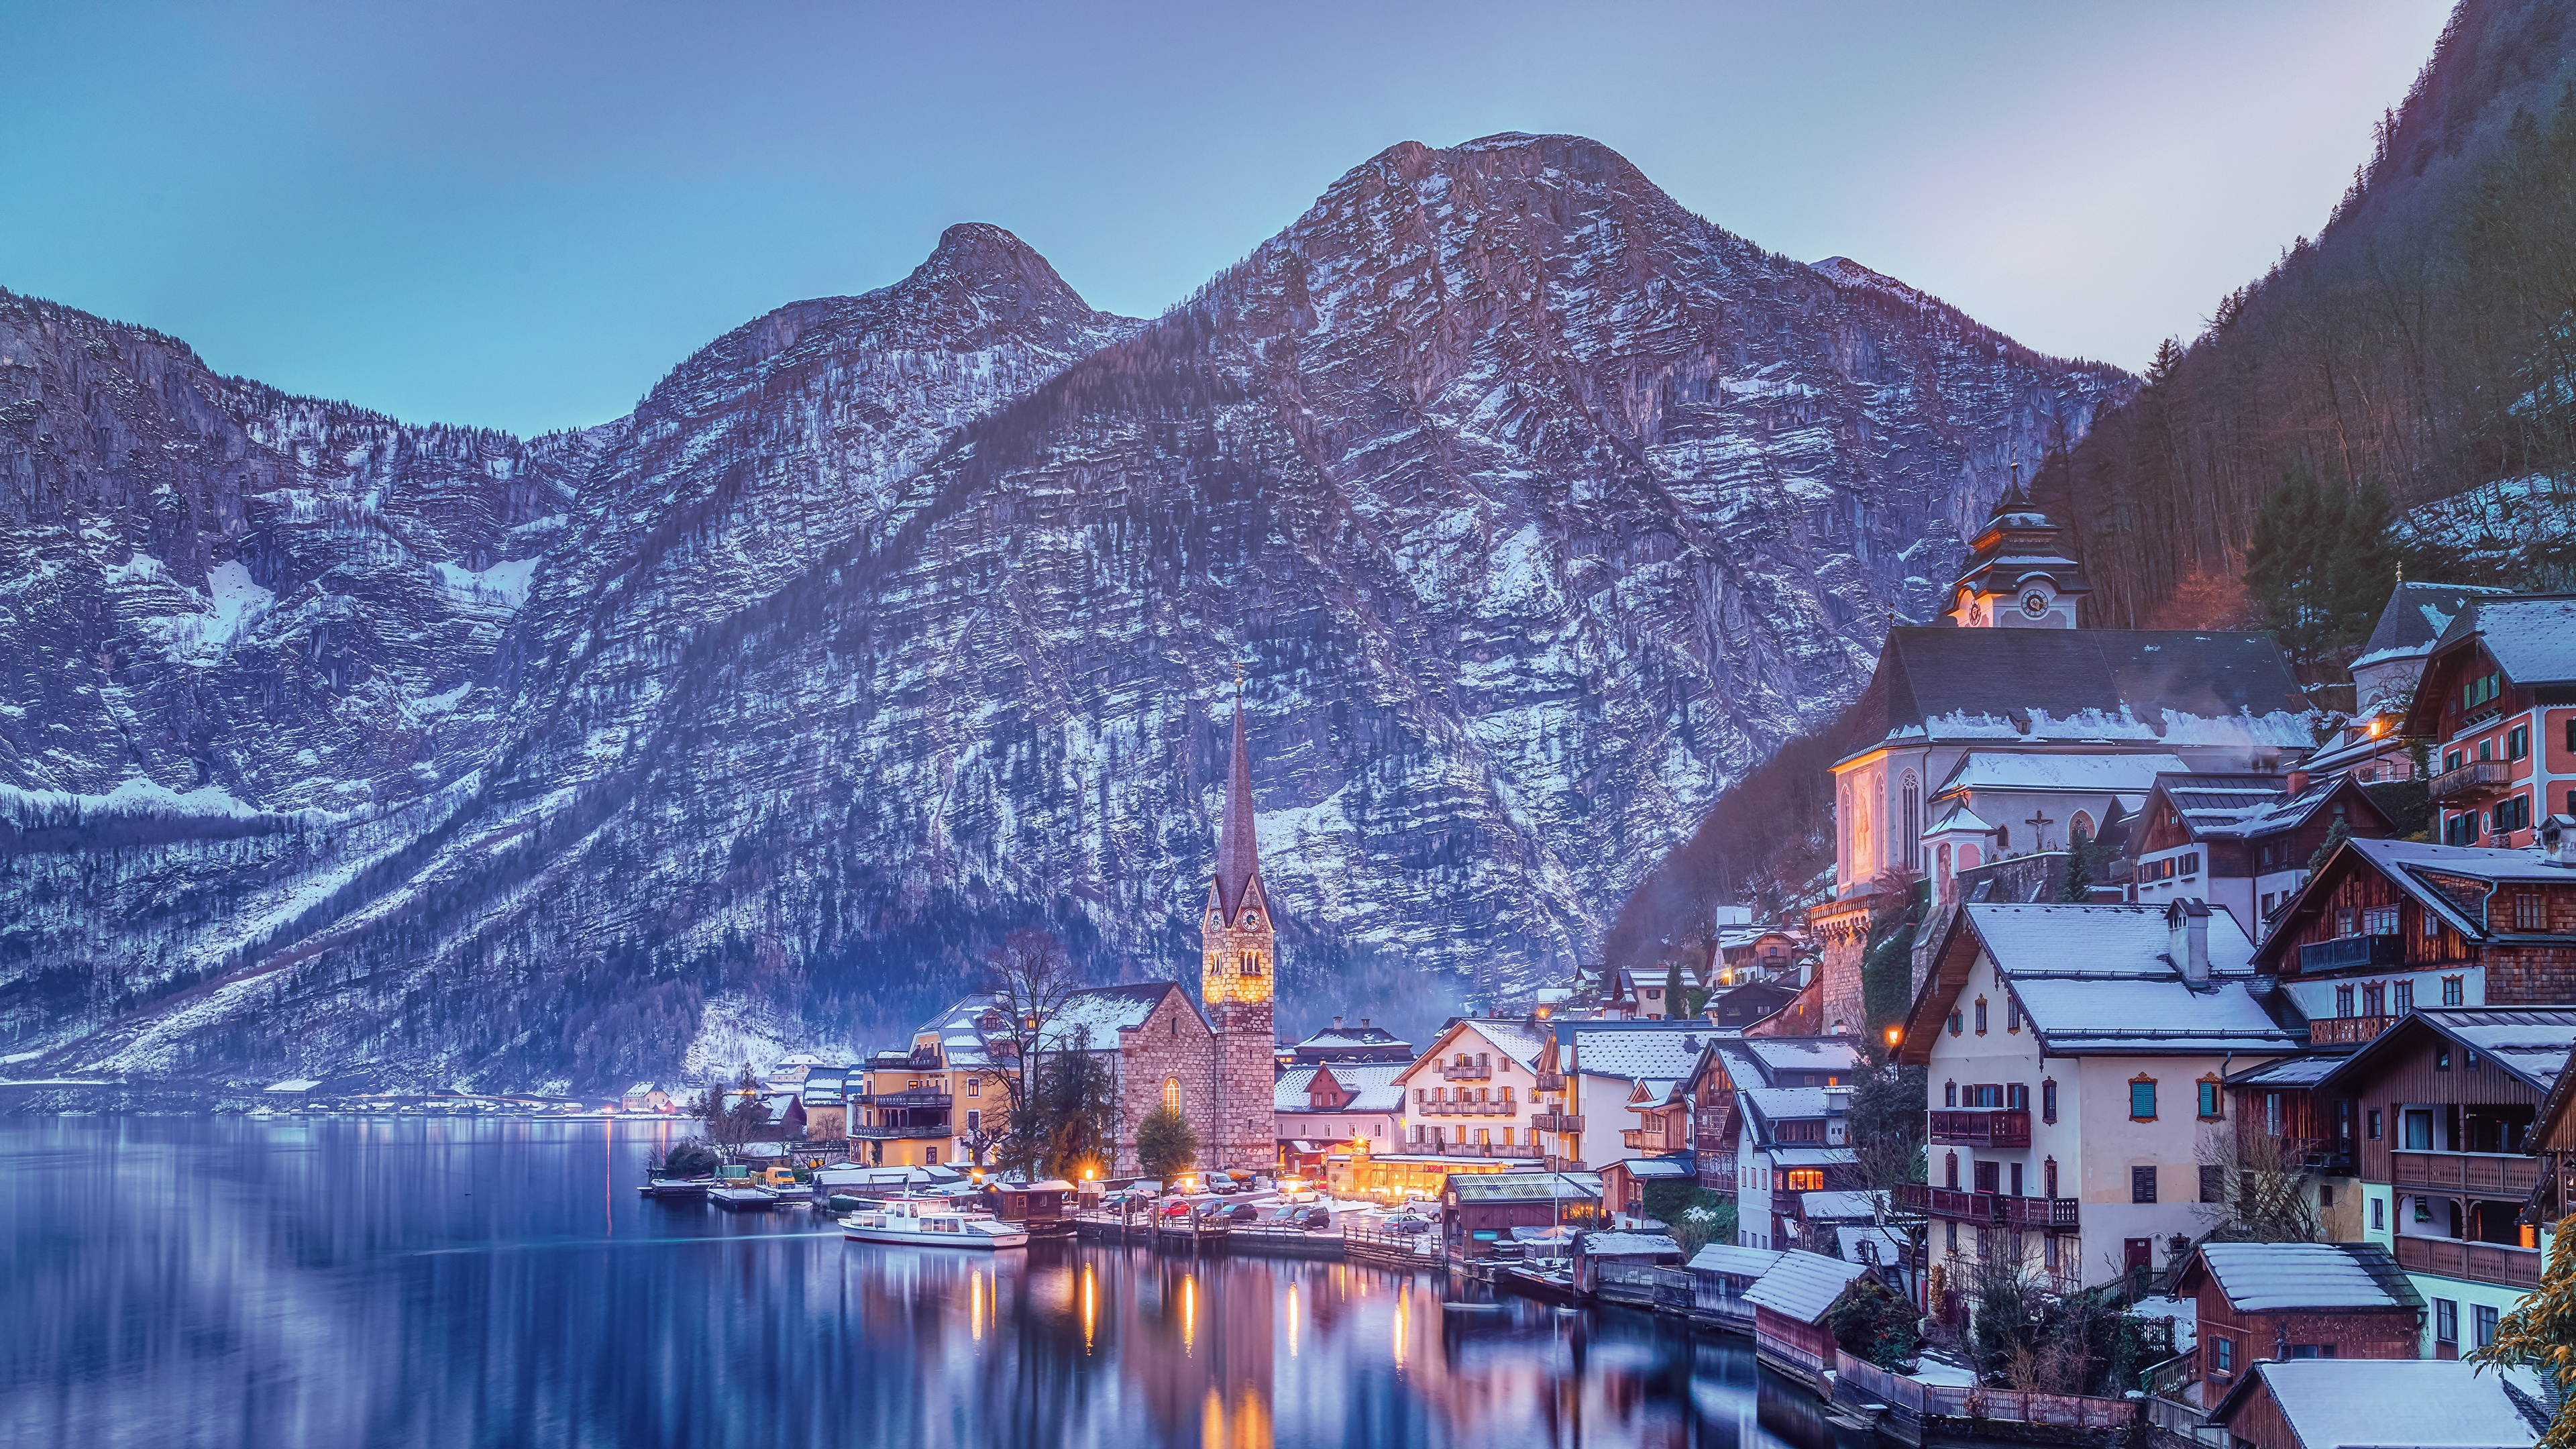 Wallpapers Hallstatt Alps Austria Winter Mountains Lake 3840x2160